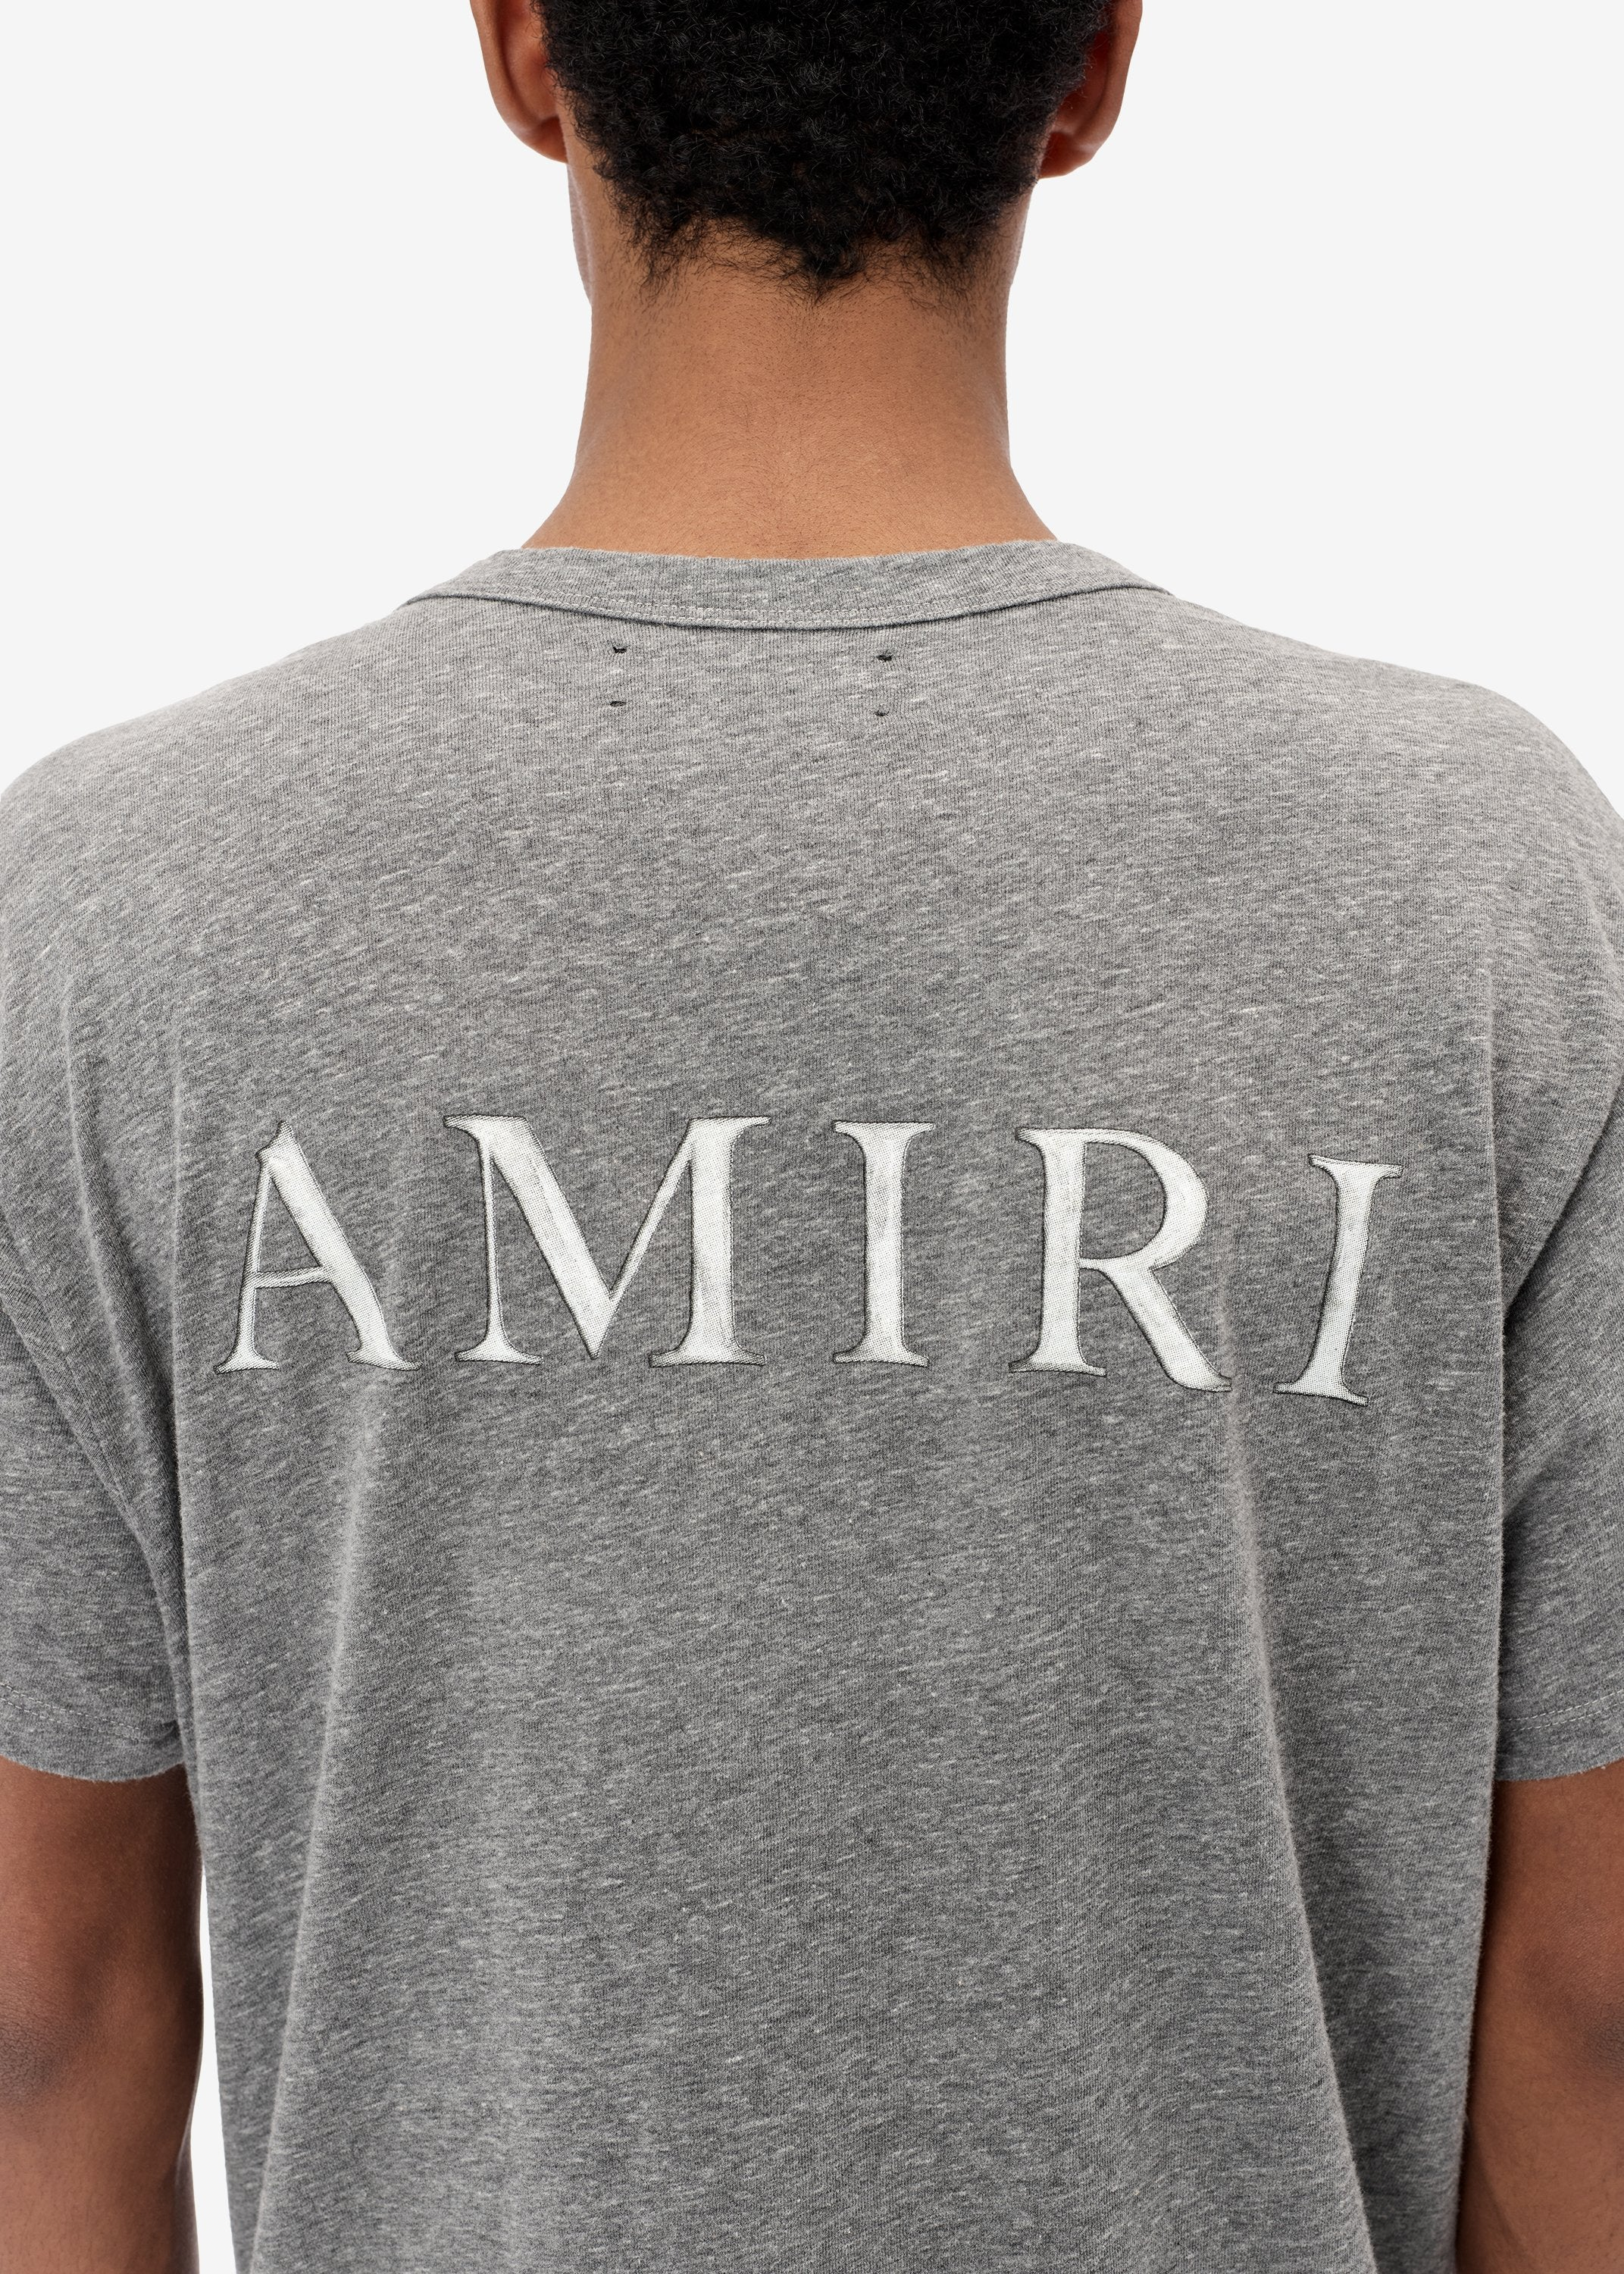 amiri-bones-m-a-tee-heather-grey-image-5